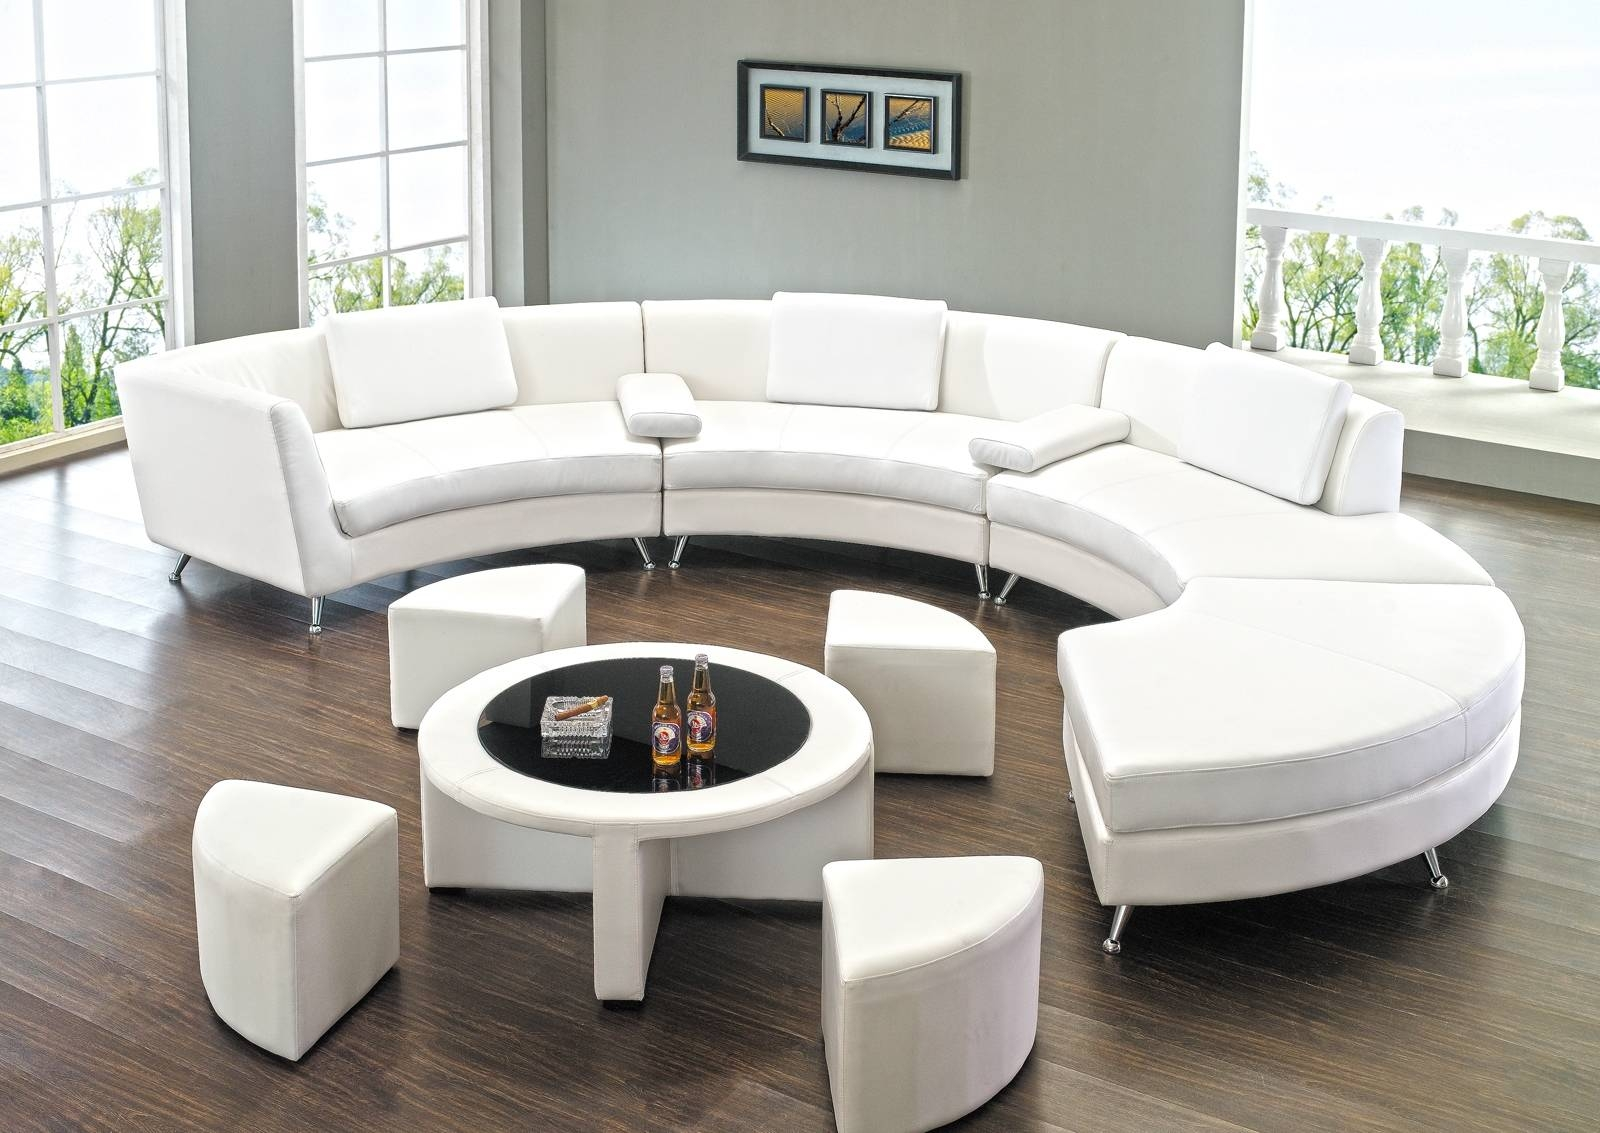 Round Sectional Sofa Leather | Tehranmix Decoration intended for Wide Sectional Sofa (Image 19 of 25)